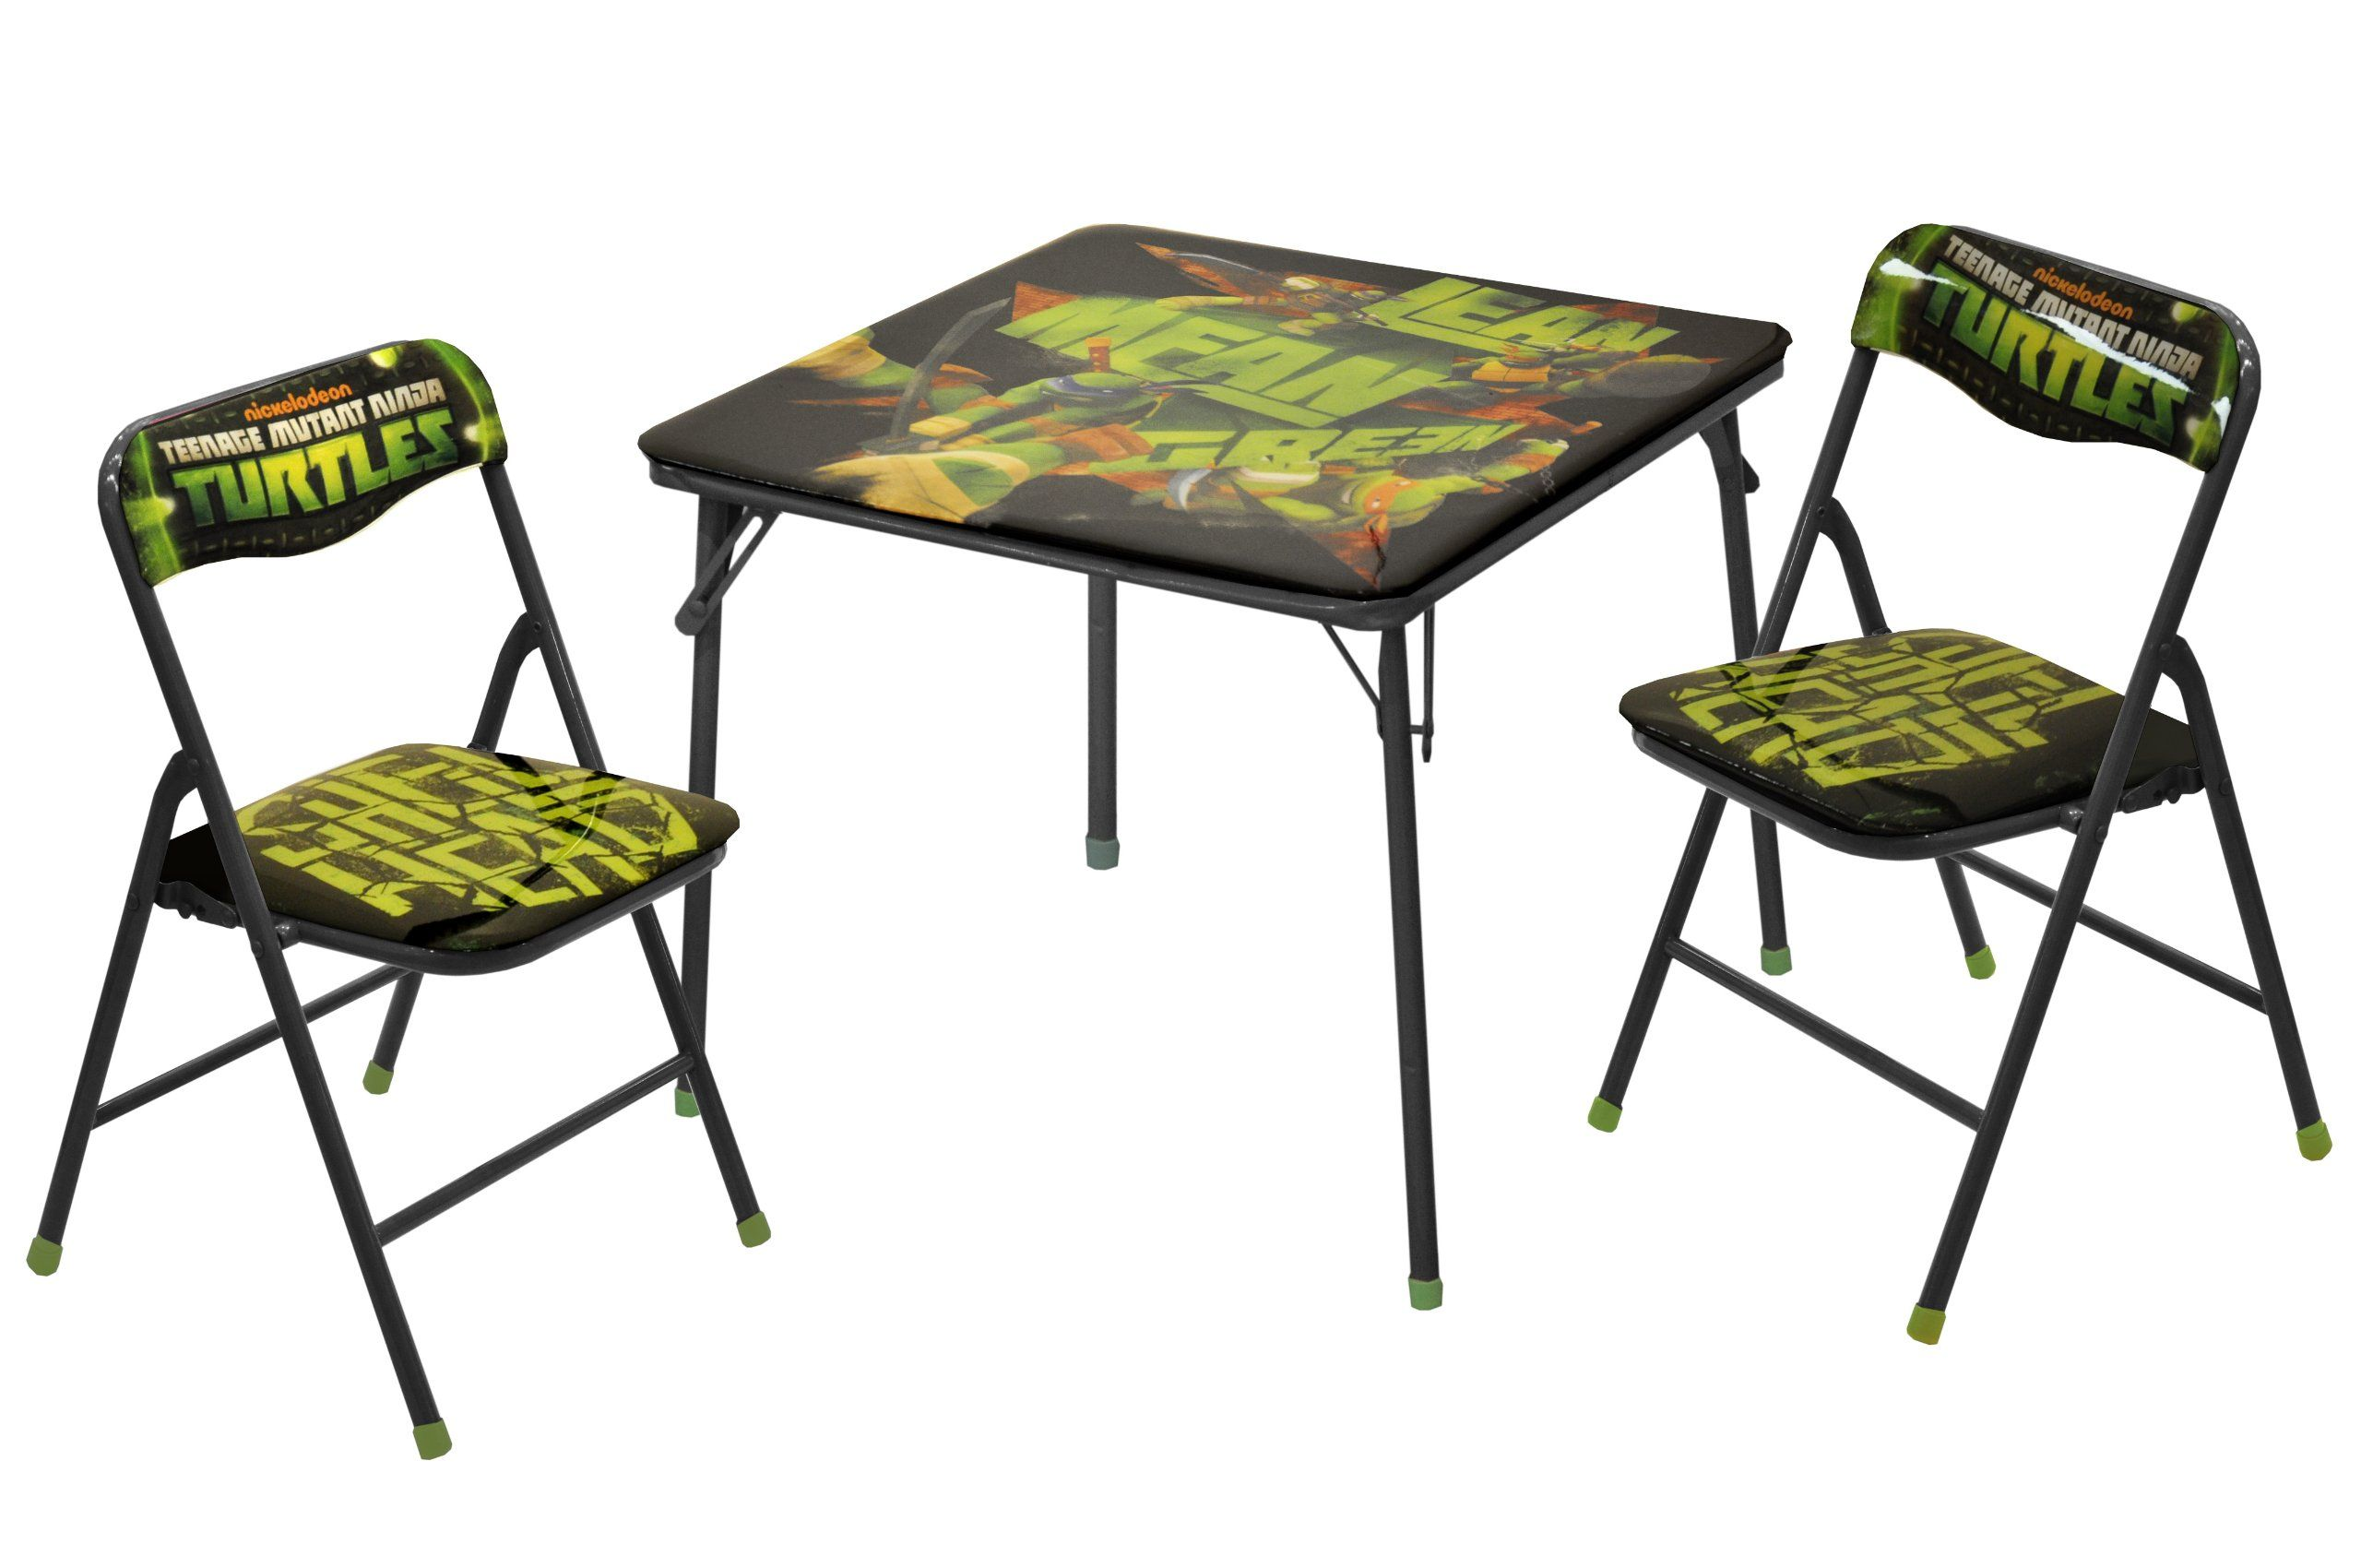 """Nickelodeon Teenage Mutant Ninja Turtles Table and Chair Set (3-Piece). Unique Nickelodeon Teenage Mutant Ninja Turtles design. Easy to clean and store. Set includes two folding chairs and one folding table. Chair capacity is 81 lbs. Table dimensions: 24""""L x 24""""W x 20""""H."""